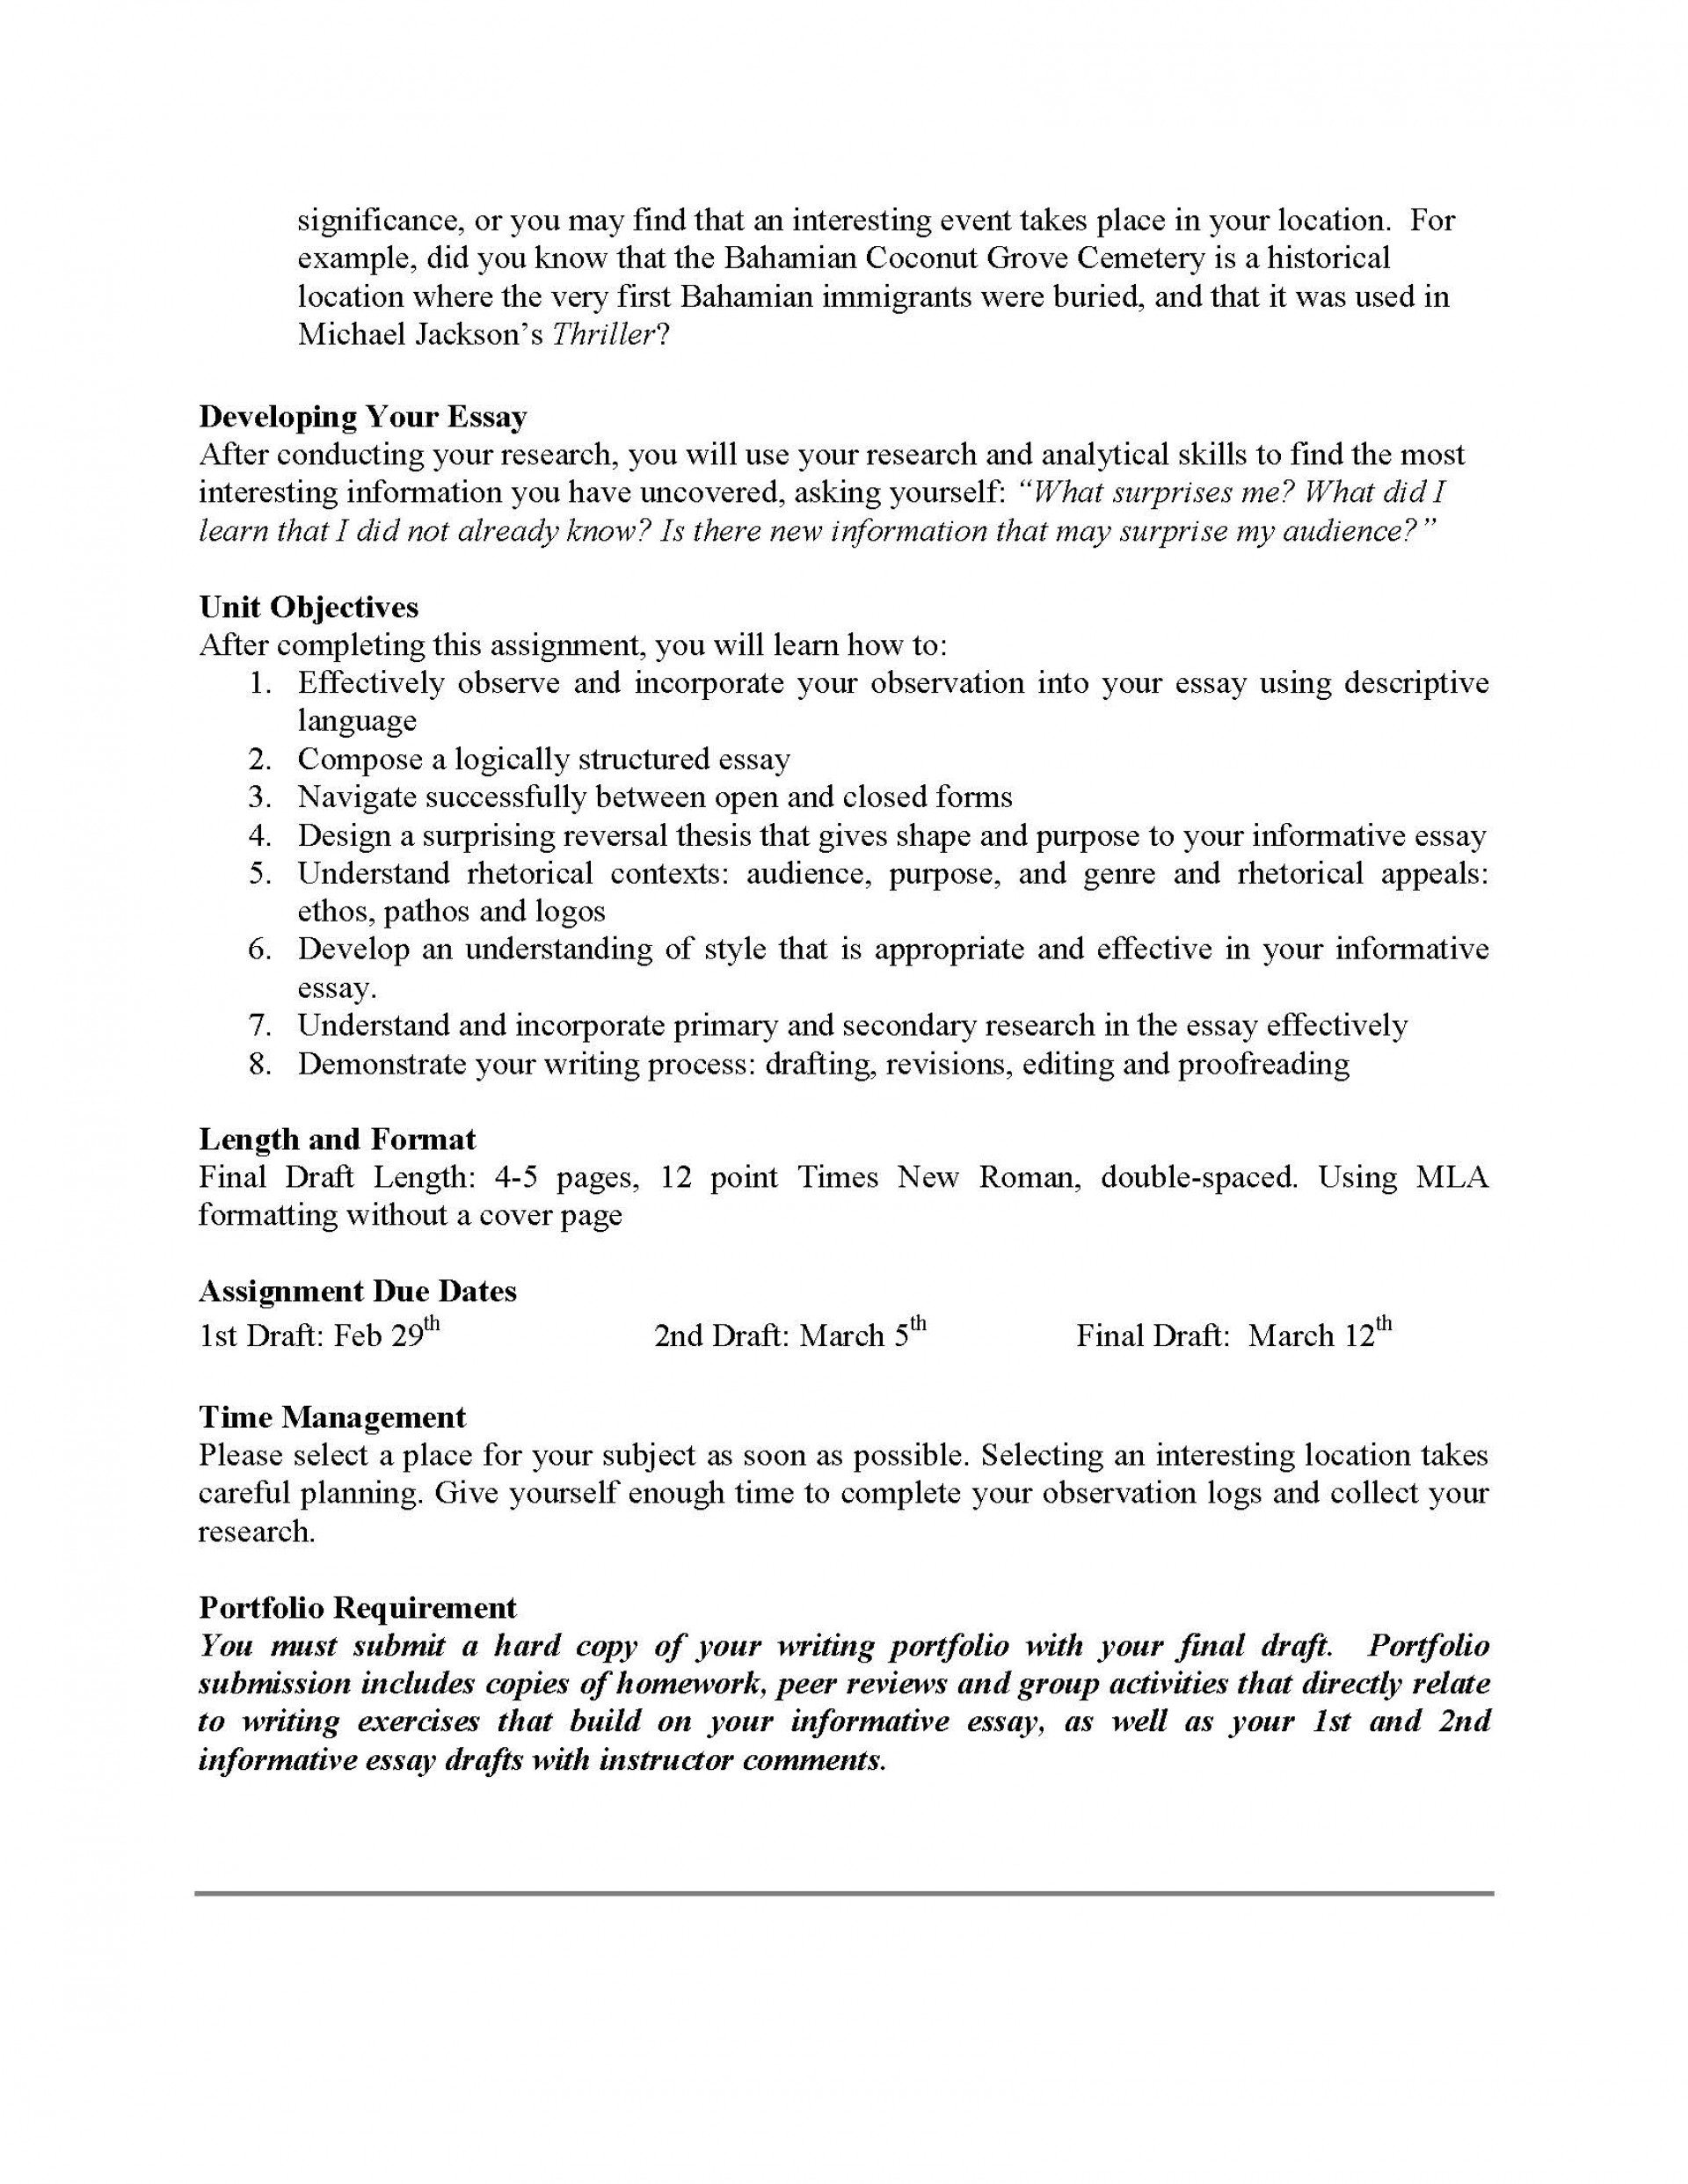 007 Essay Example Informative Unit Assignment Page 2 Informational Top Format Interview Explanatory Guidelines Quote 1920